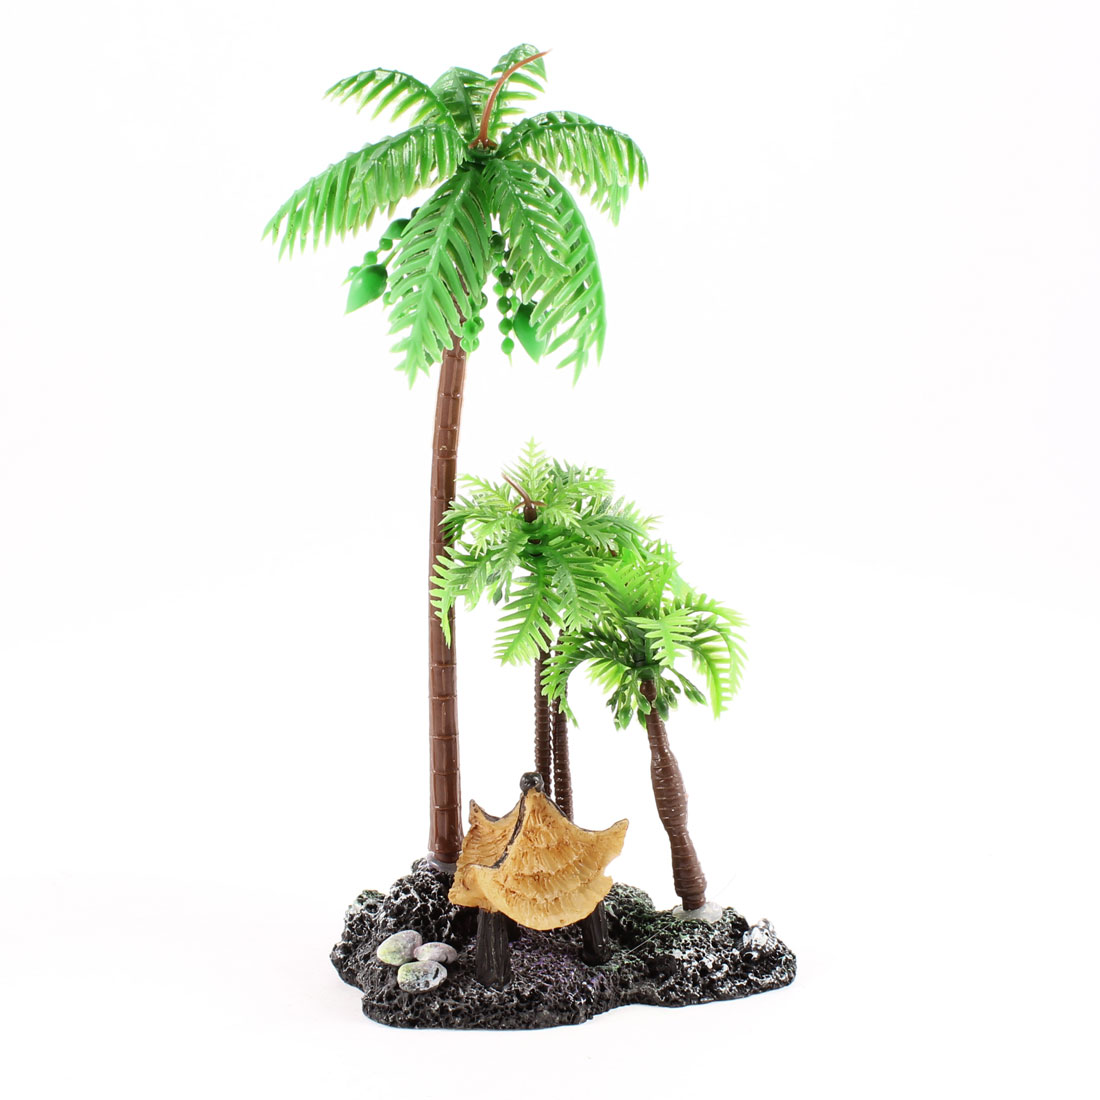 Aquarium Decor Black Ceramic Base Green Artificial Coconut Tree Plants 6""